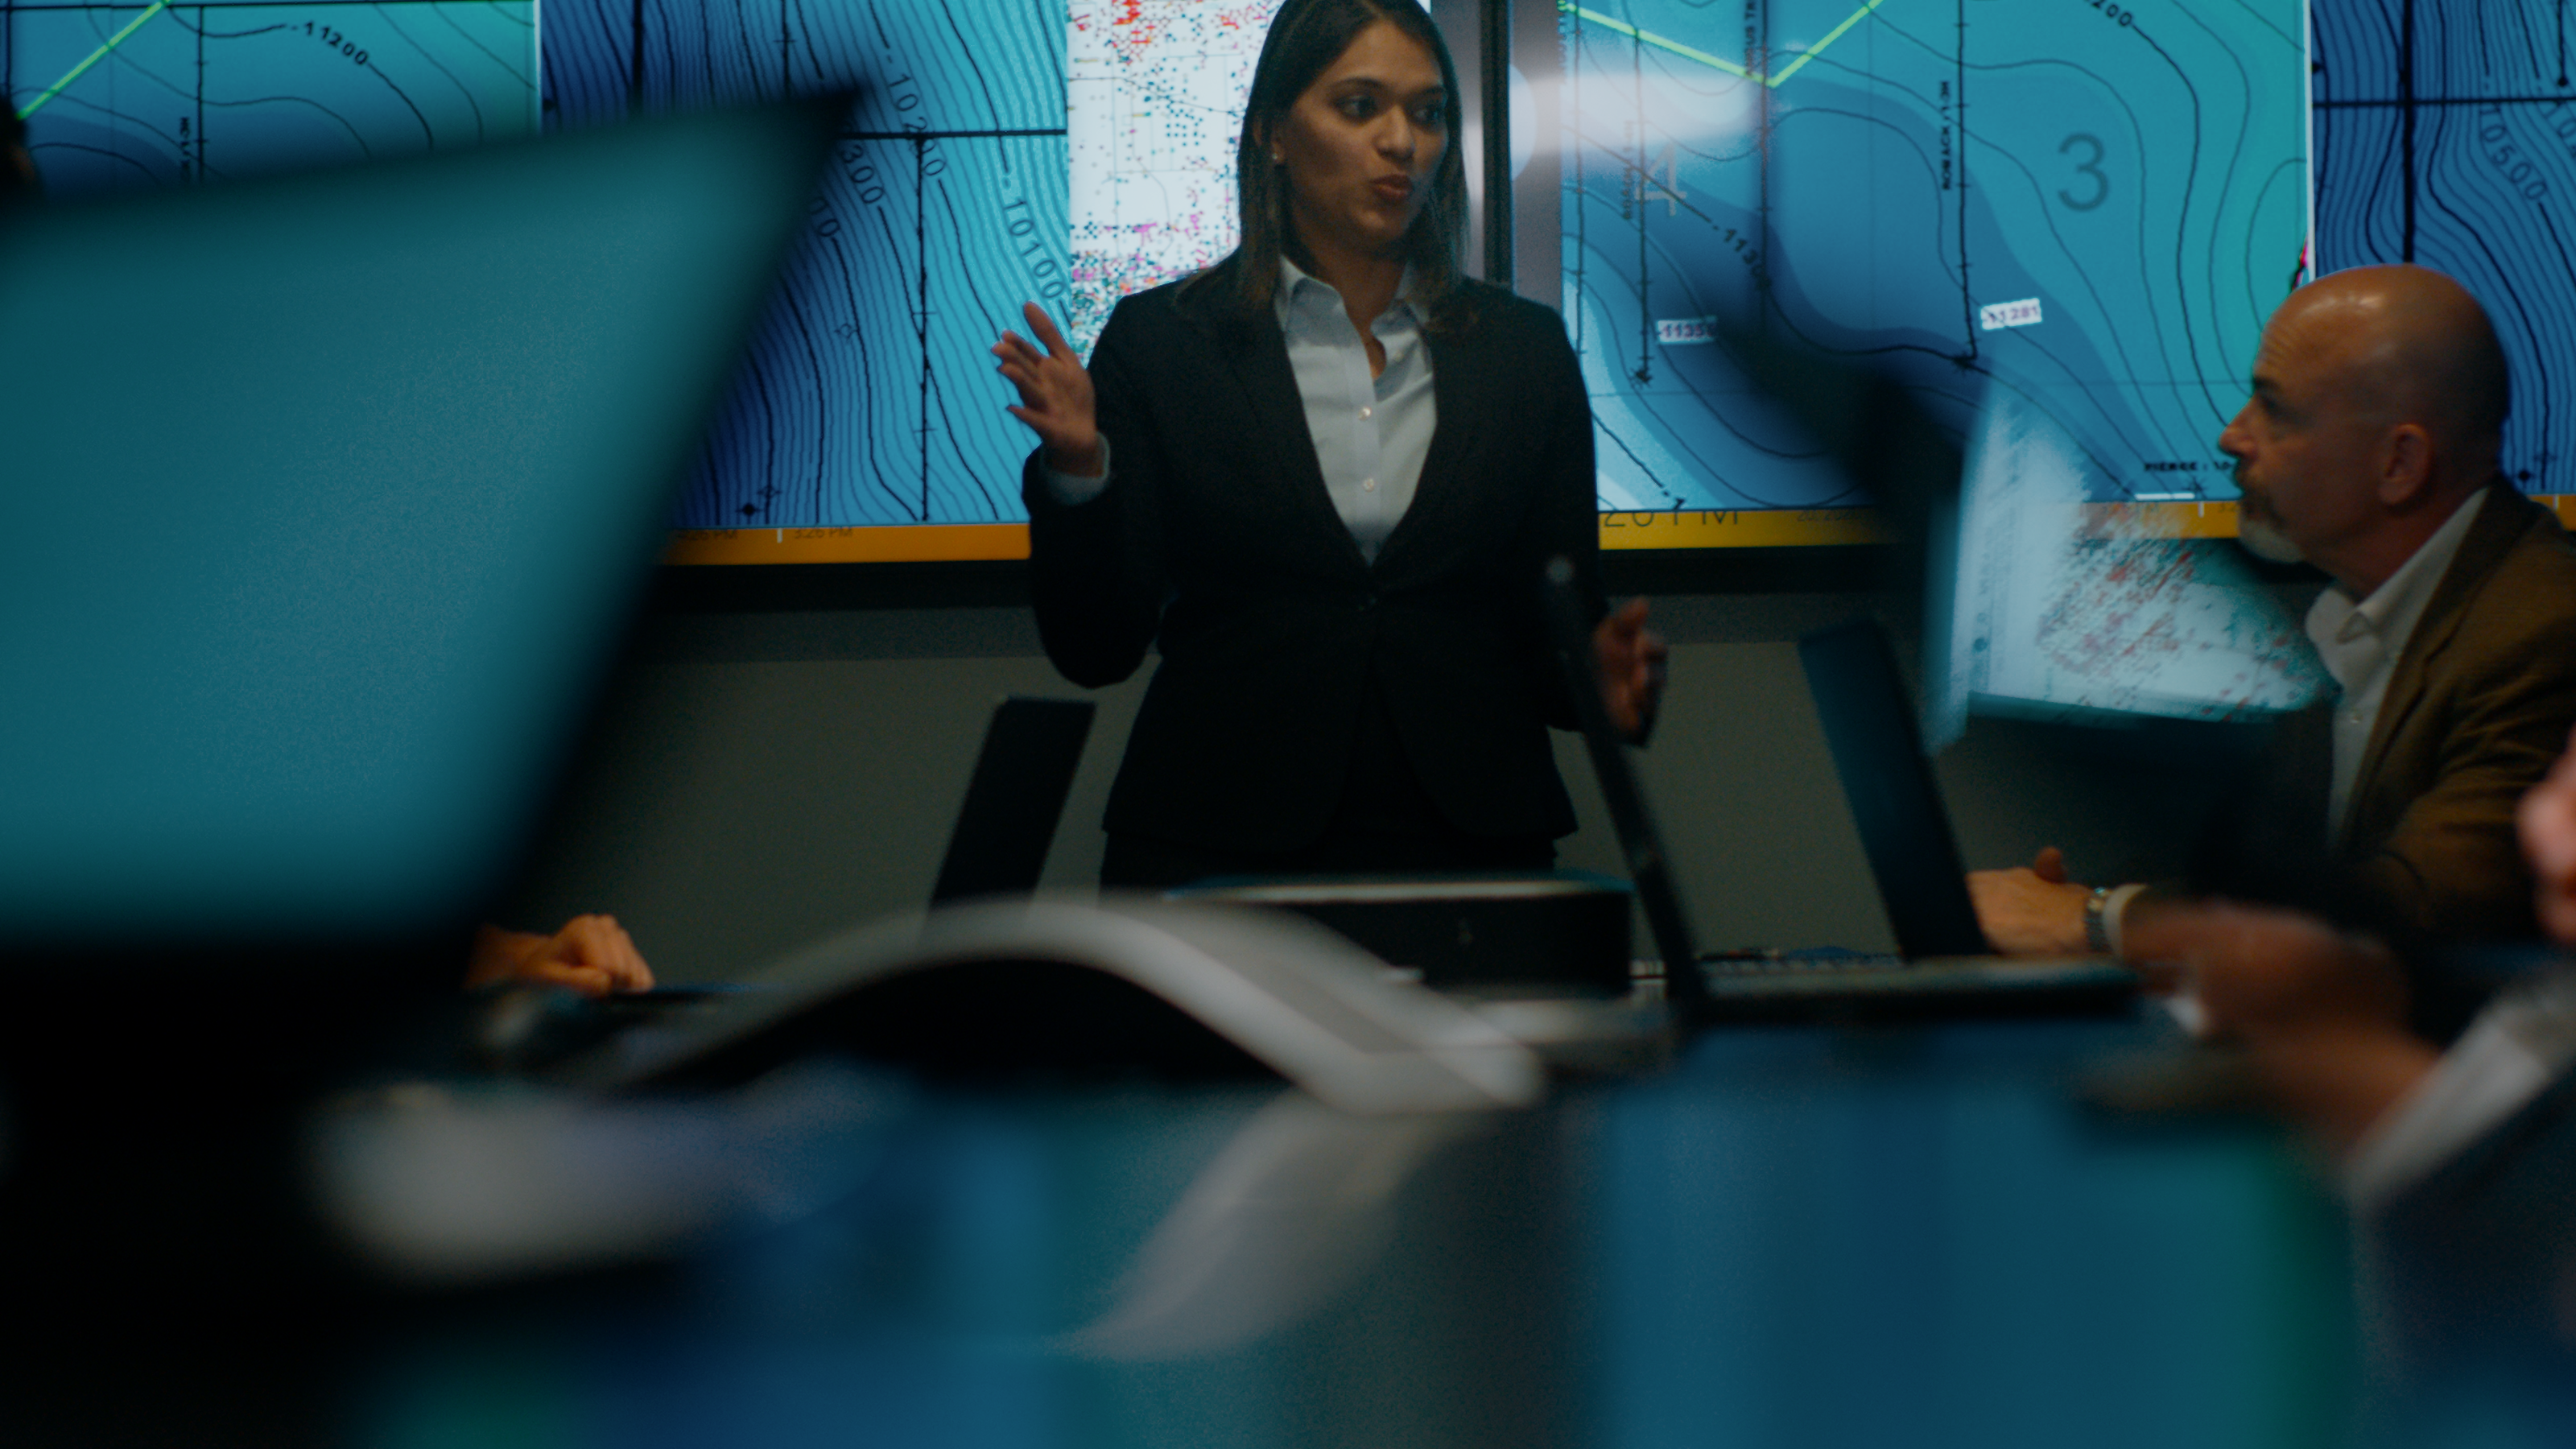 Female leading a group meeting with maps on screen